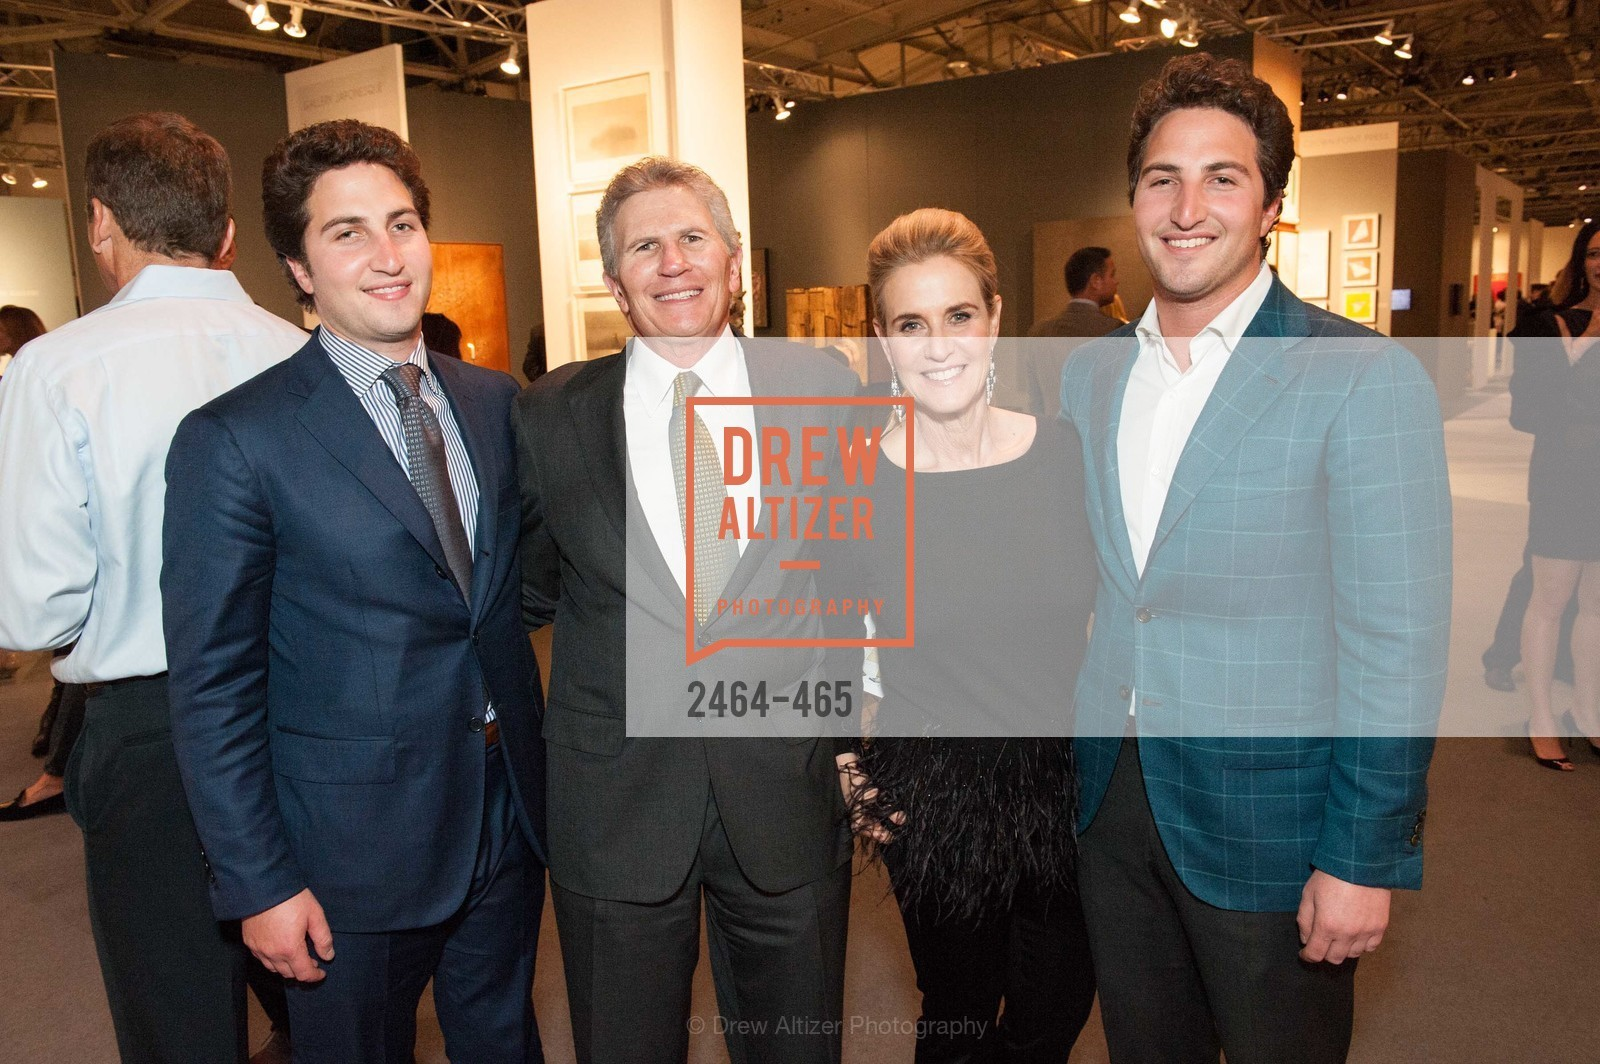 Jason Goldman, Doug Goldman, Lisa Goldman, Matthew Goldman, FOG Design + Art Preview Gala, US. US, January 16th, 2014,Drew Altizer, Drew Altizer Photography, full-service agency, private events, San Francisco photographer, photographer california